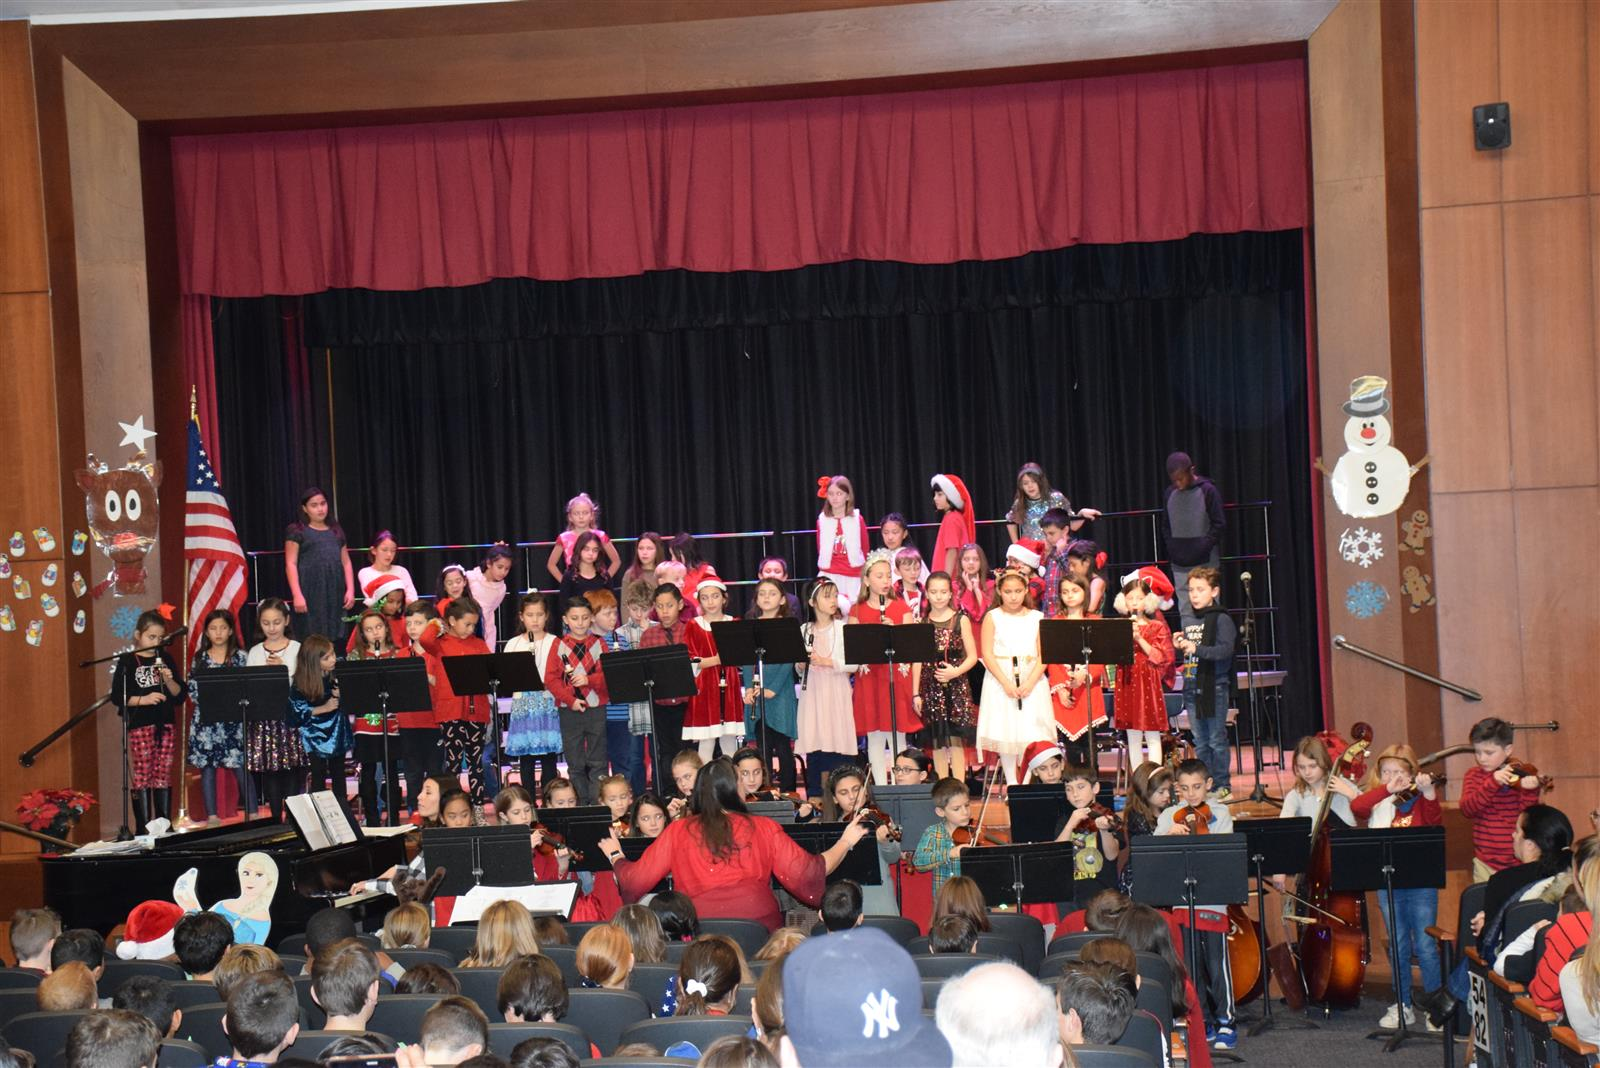 Synergy and Teamwork the Ingredients in Holiday Concerts